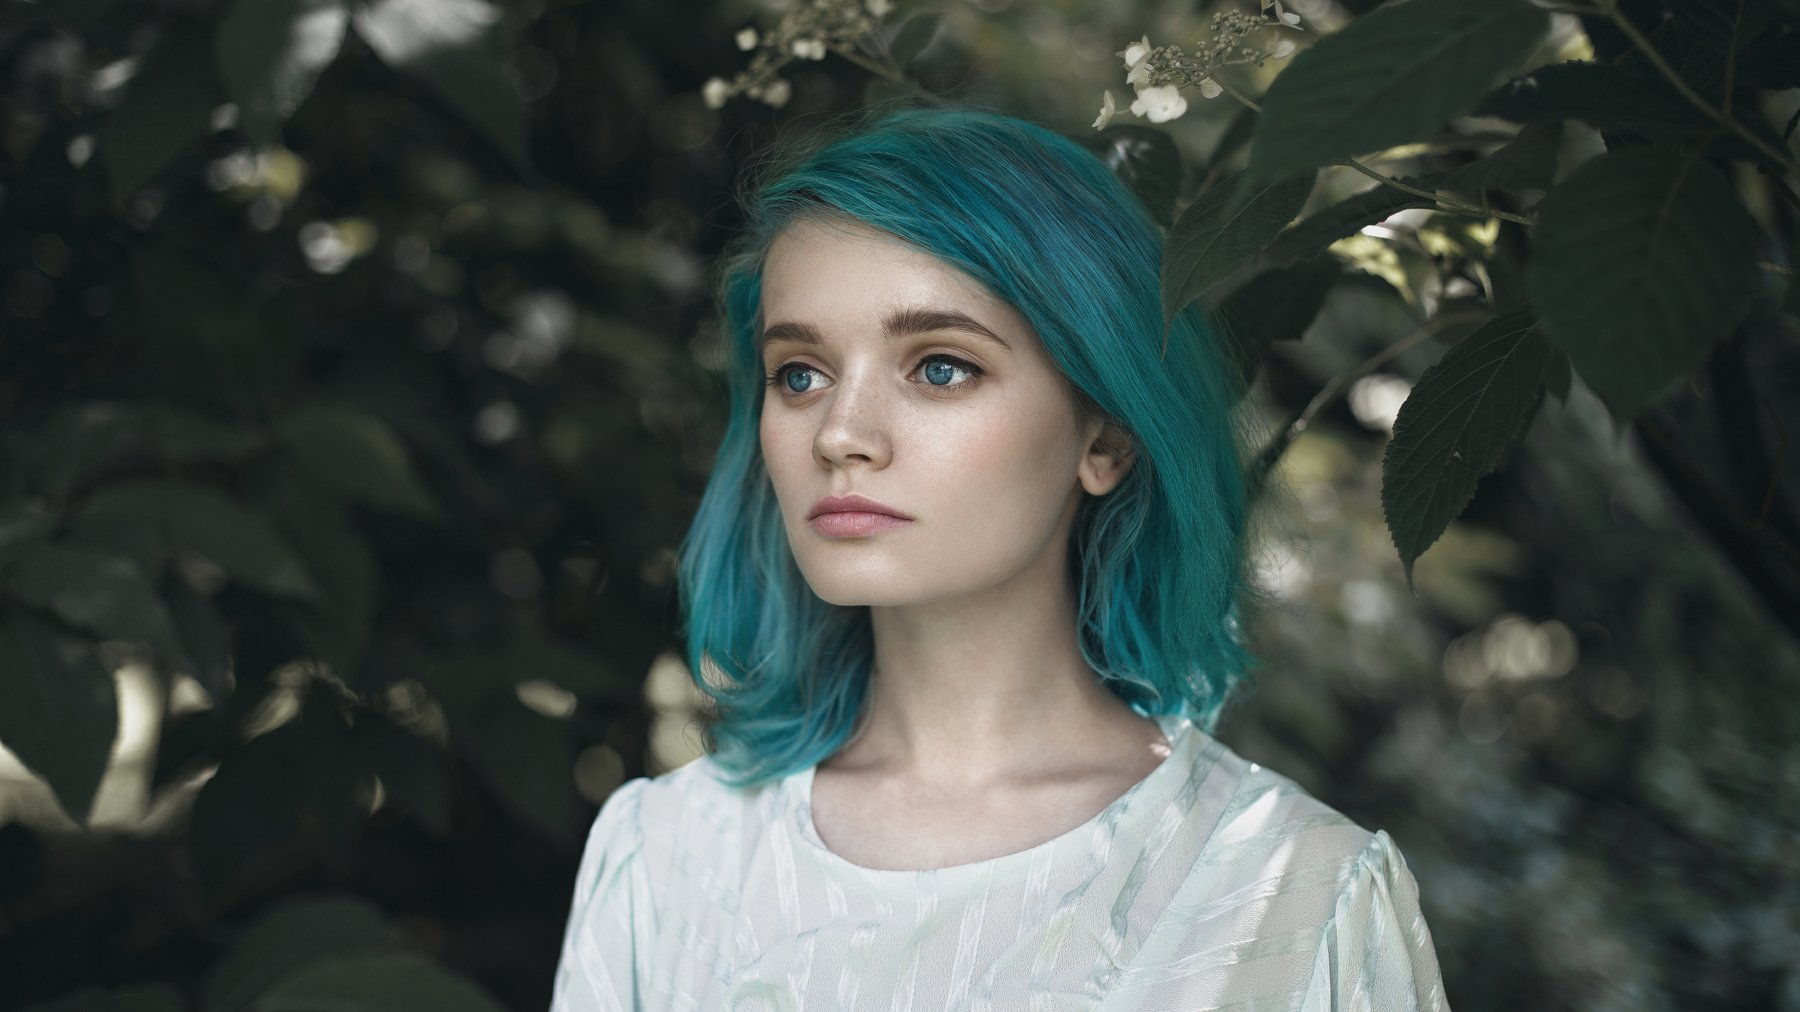 blue hair, nymph, forest, hipster, blue eyes, sad, saddness, summer, silence, Наташа Янкелевич